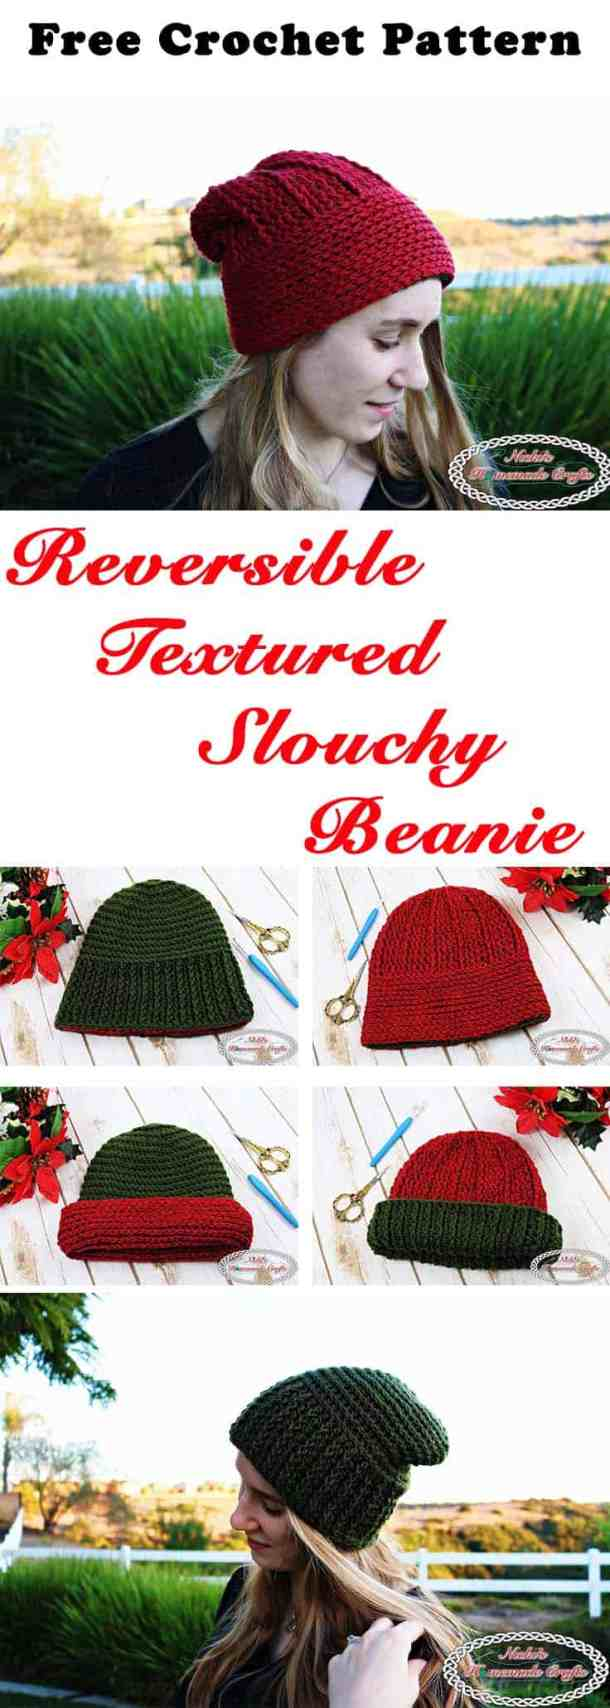 Reversible Textured Slouchy Beanie - Red and Green - horizontal lines and vertical lines with flip over ribbing edging- Free Crochet Pattern -Nicki's Homemade Crafts #crochet #slouchy #free #pattern #red #green #textured #christmas #reversible #beanie #hat